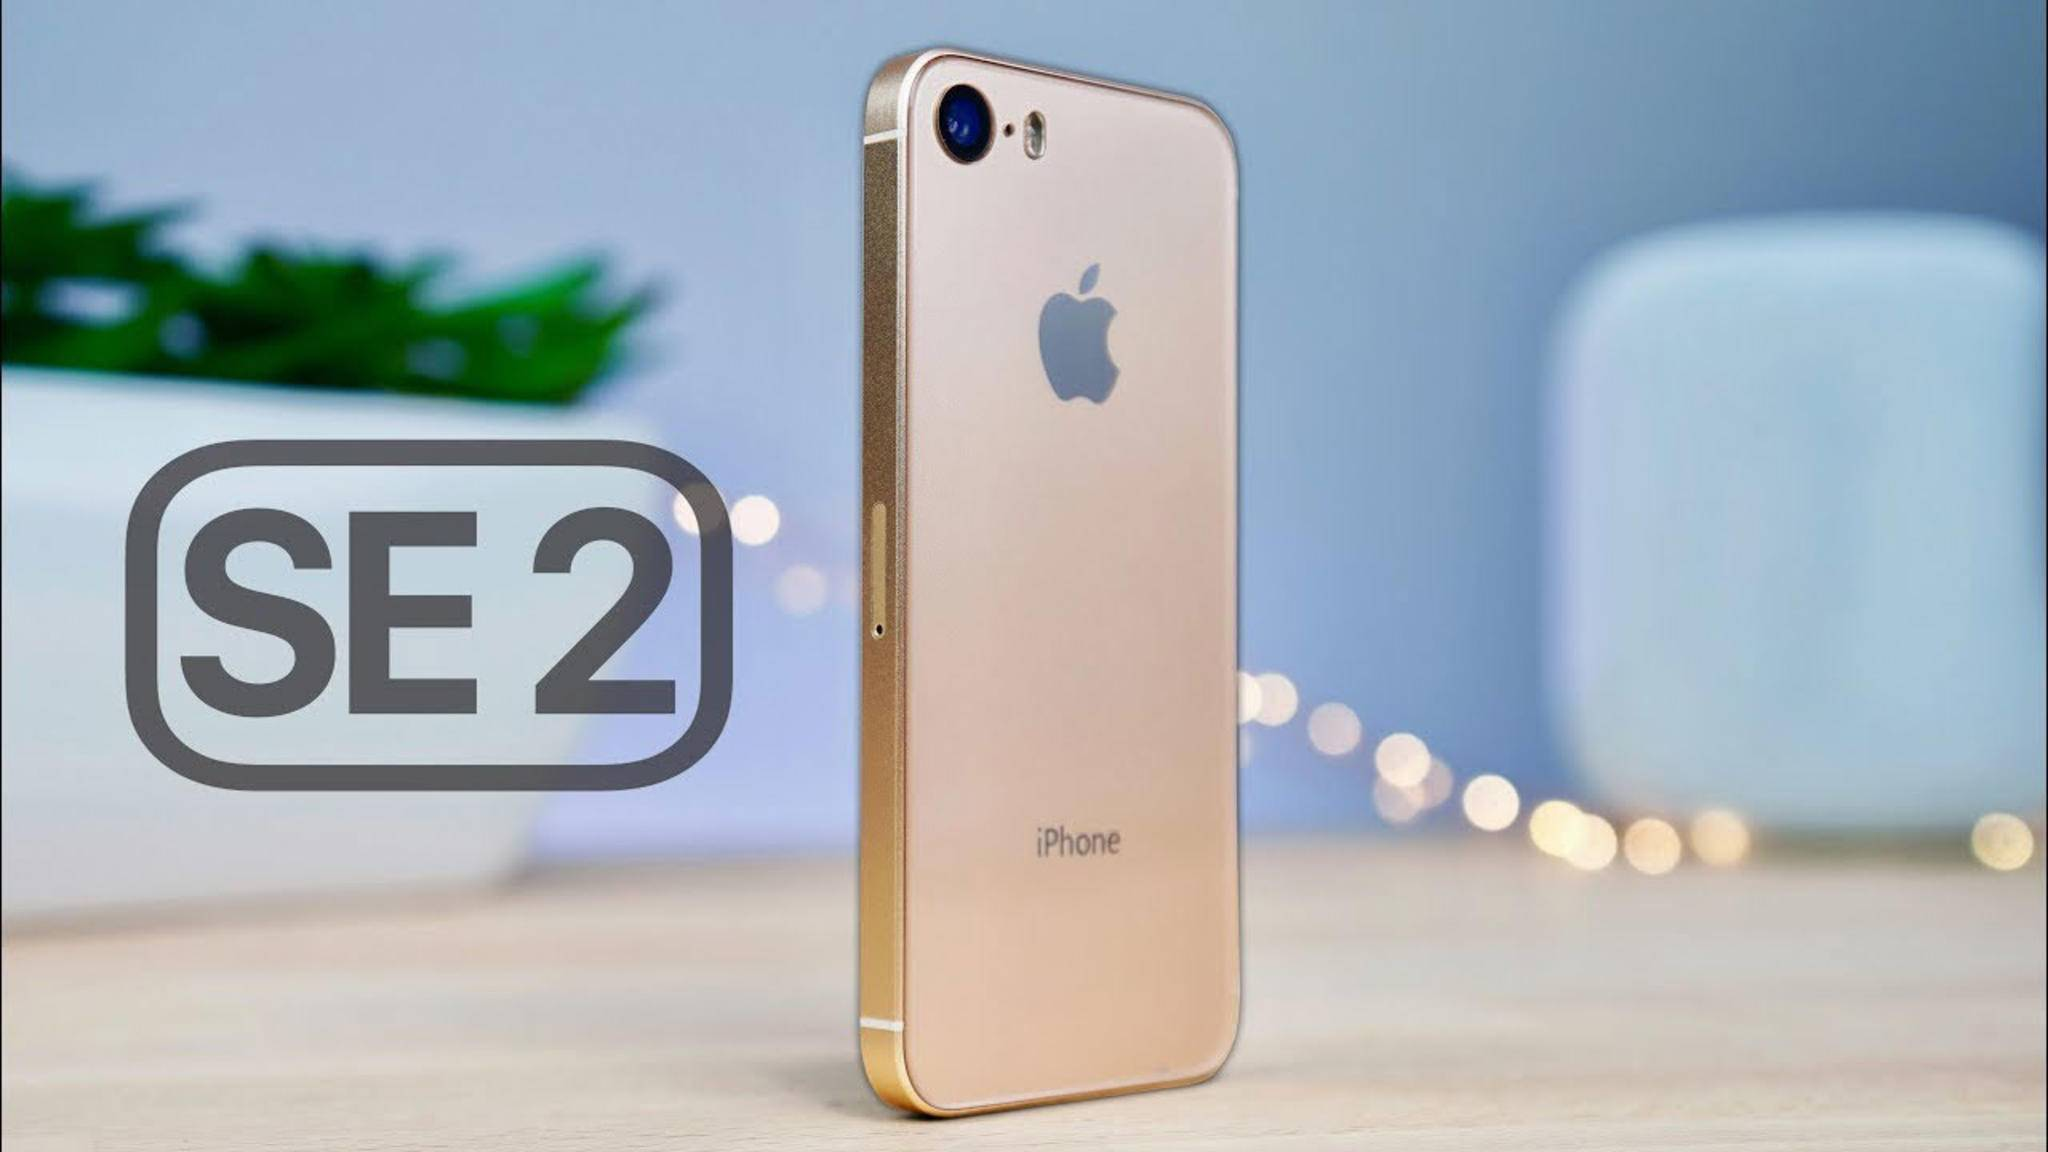 Analyst glaubt an Release von iPhone SE 2 Anfang 2020